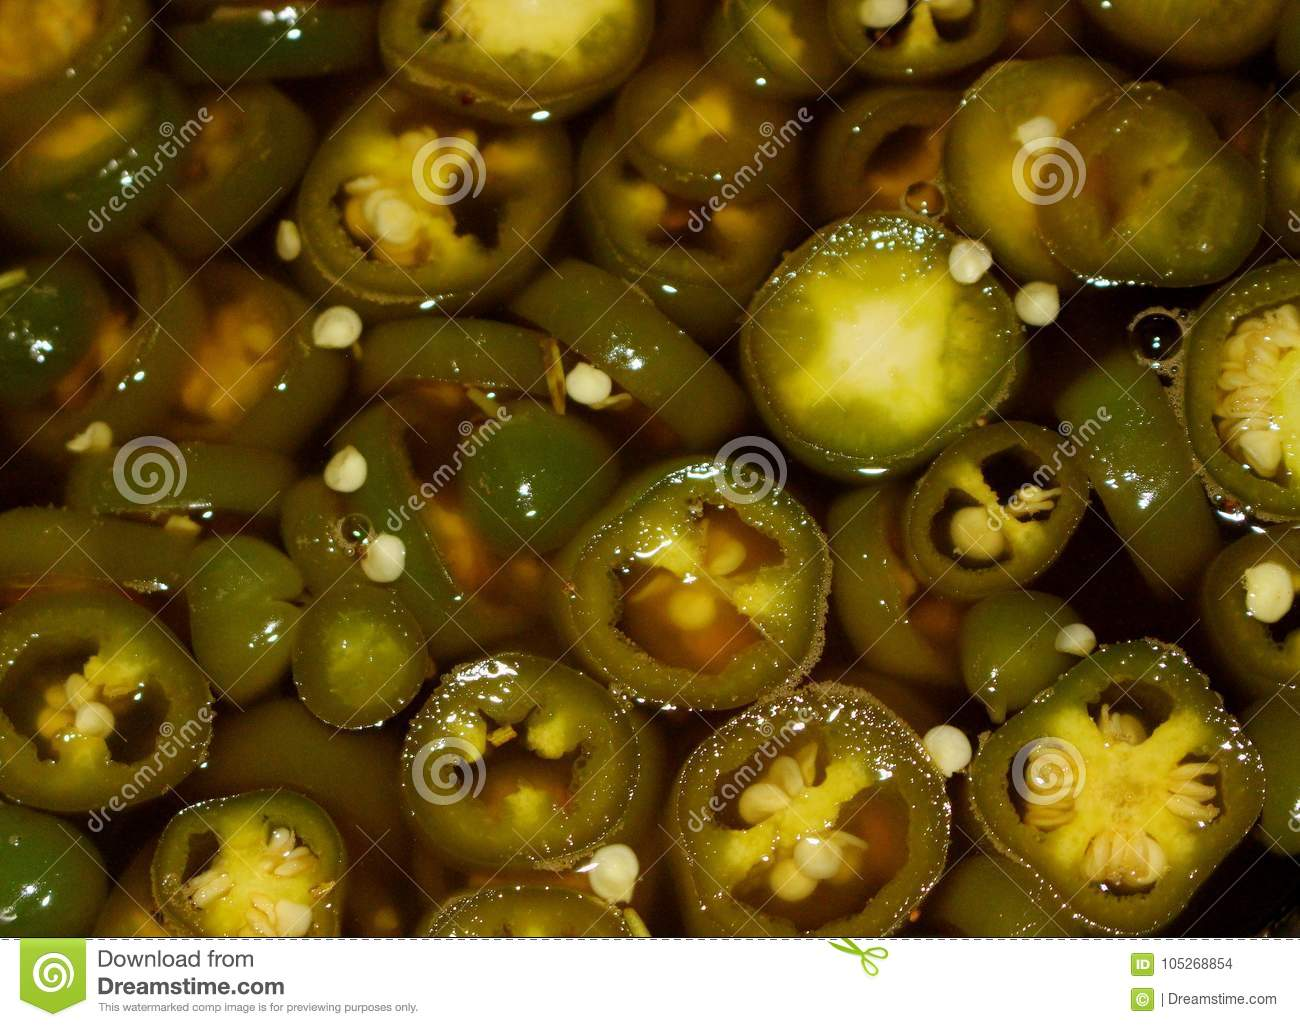 Pickled jalapeno pepper rings in marinade